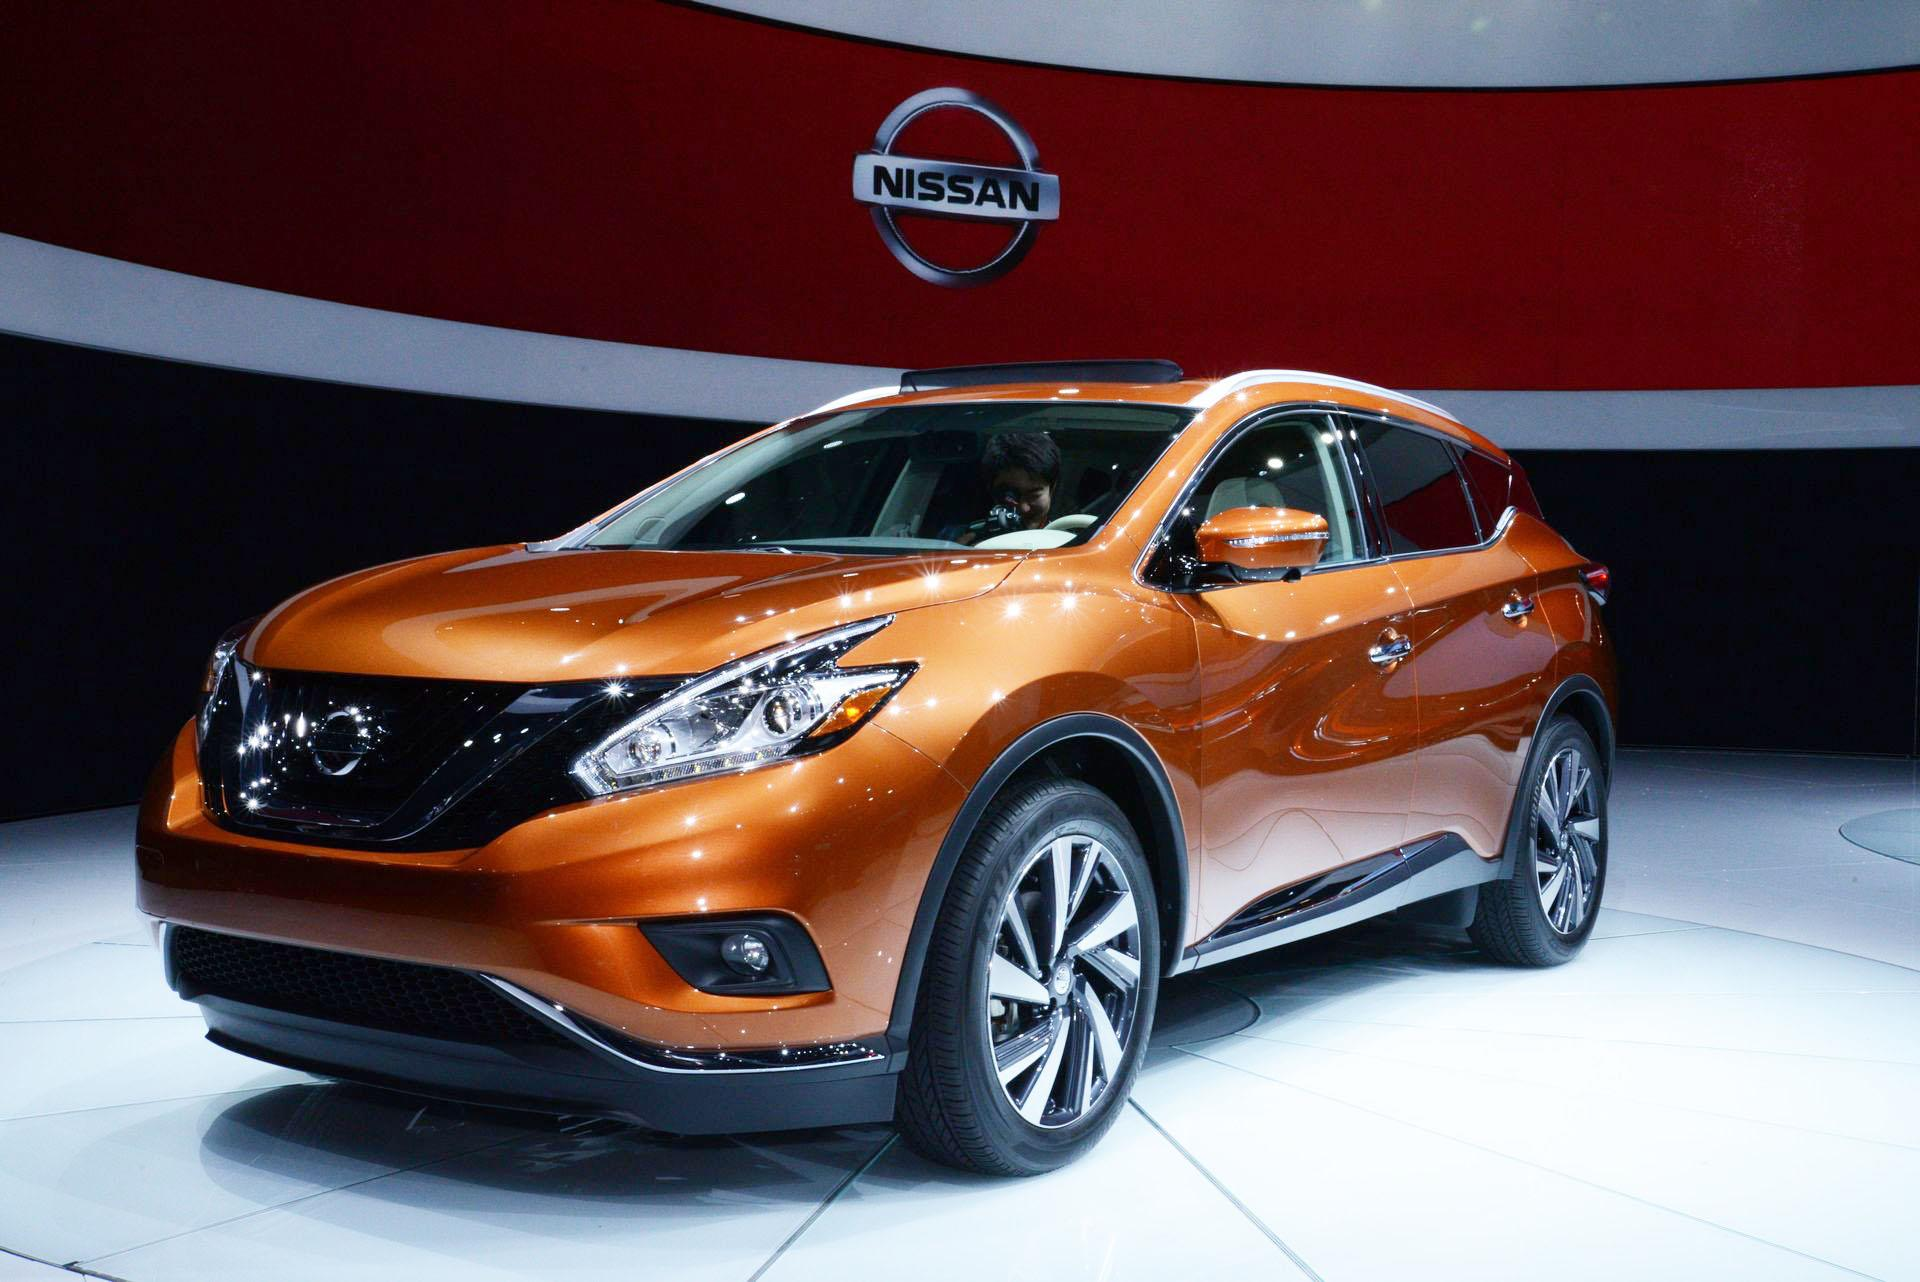 Nissan-Murano-salon-New-York-2014